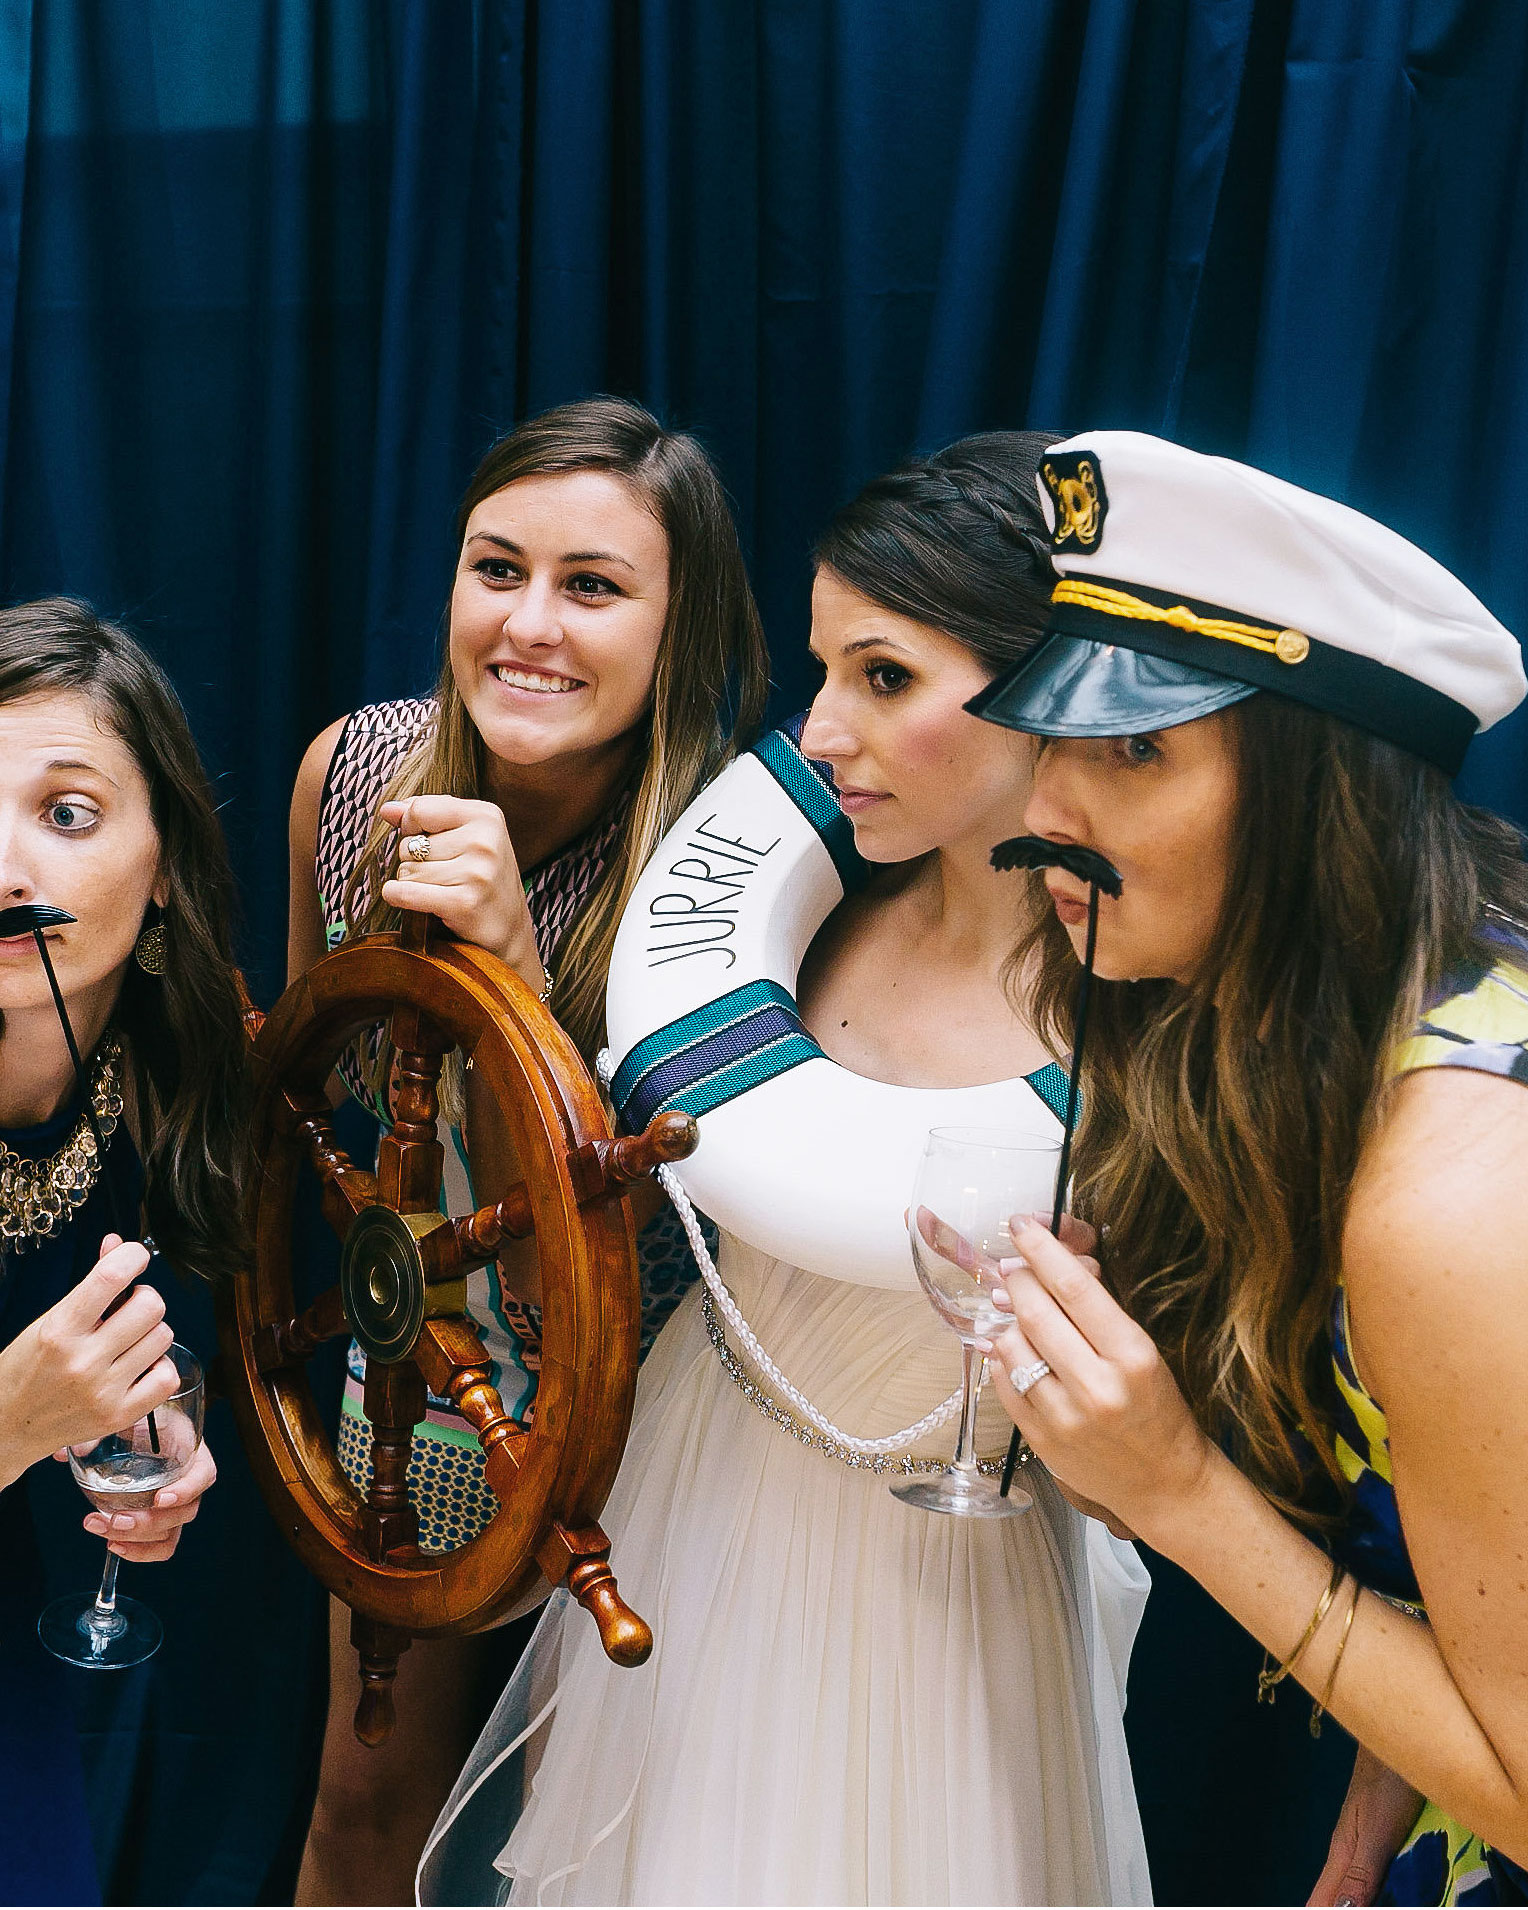 Nautical Wedding Photo Booth Props